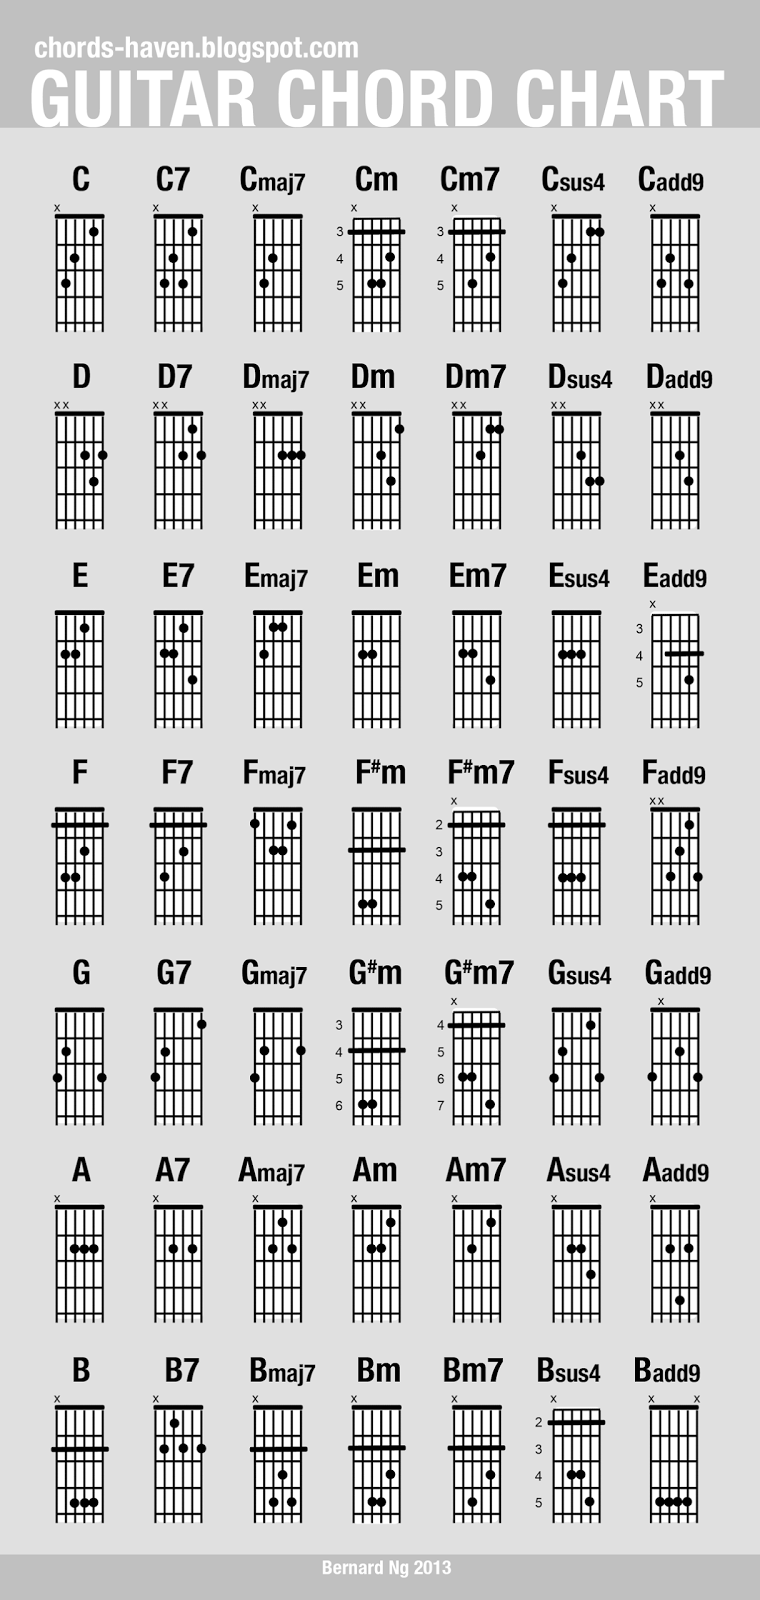 Esus4 chord guitar images guitar chords examples chords haven home to your favourite chords music lyrics fatherlandz images hexwebz Images